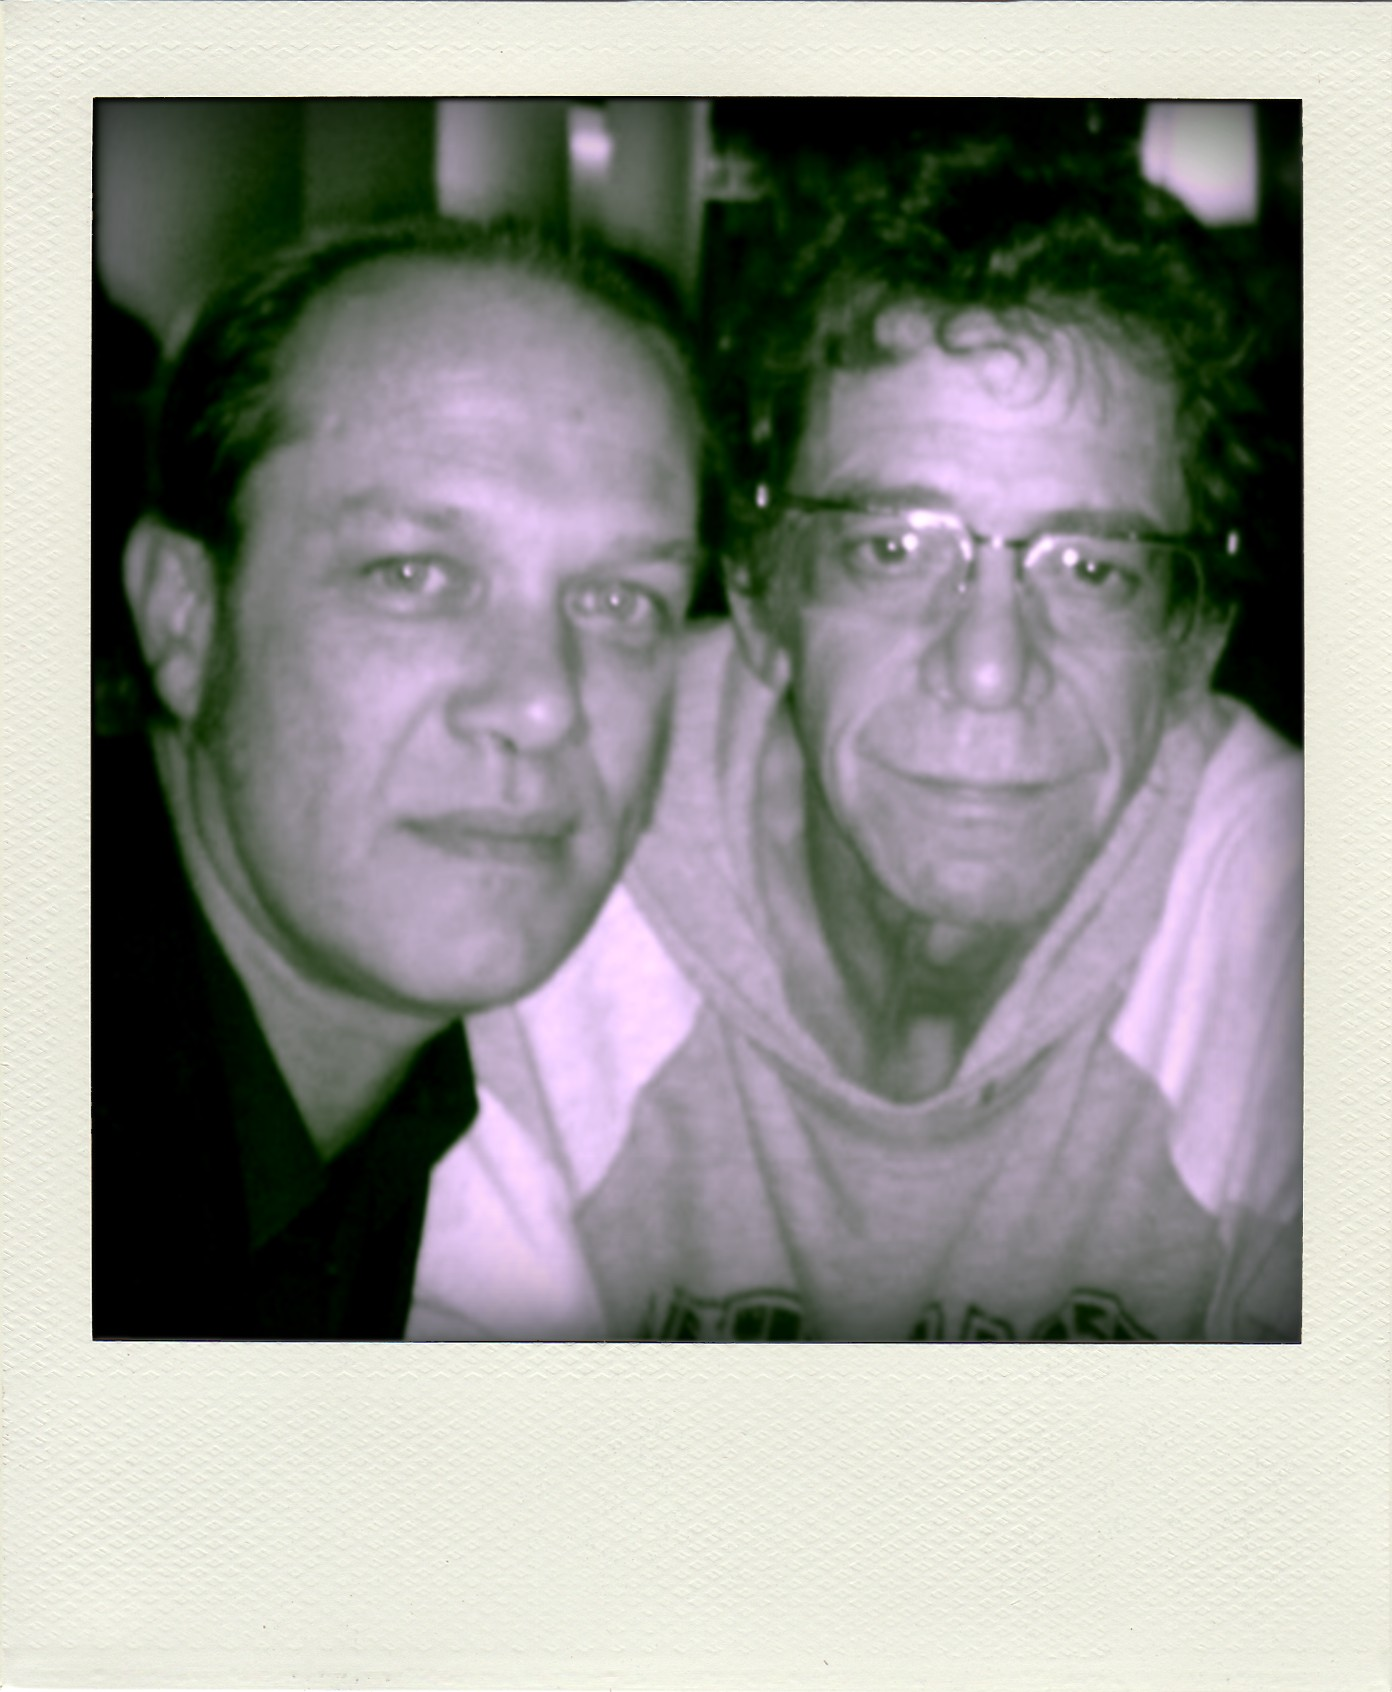 With Lou Reed, Dublin, 2005